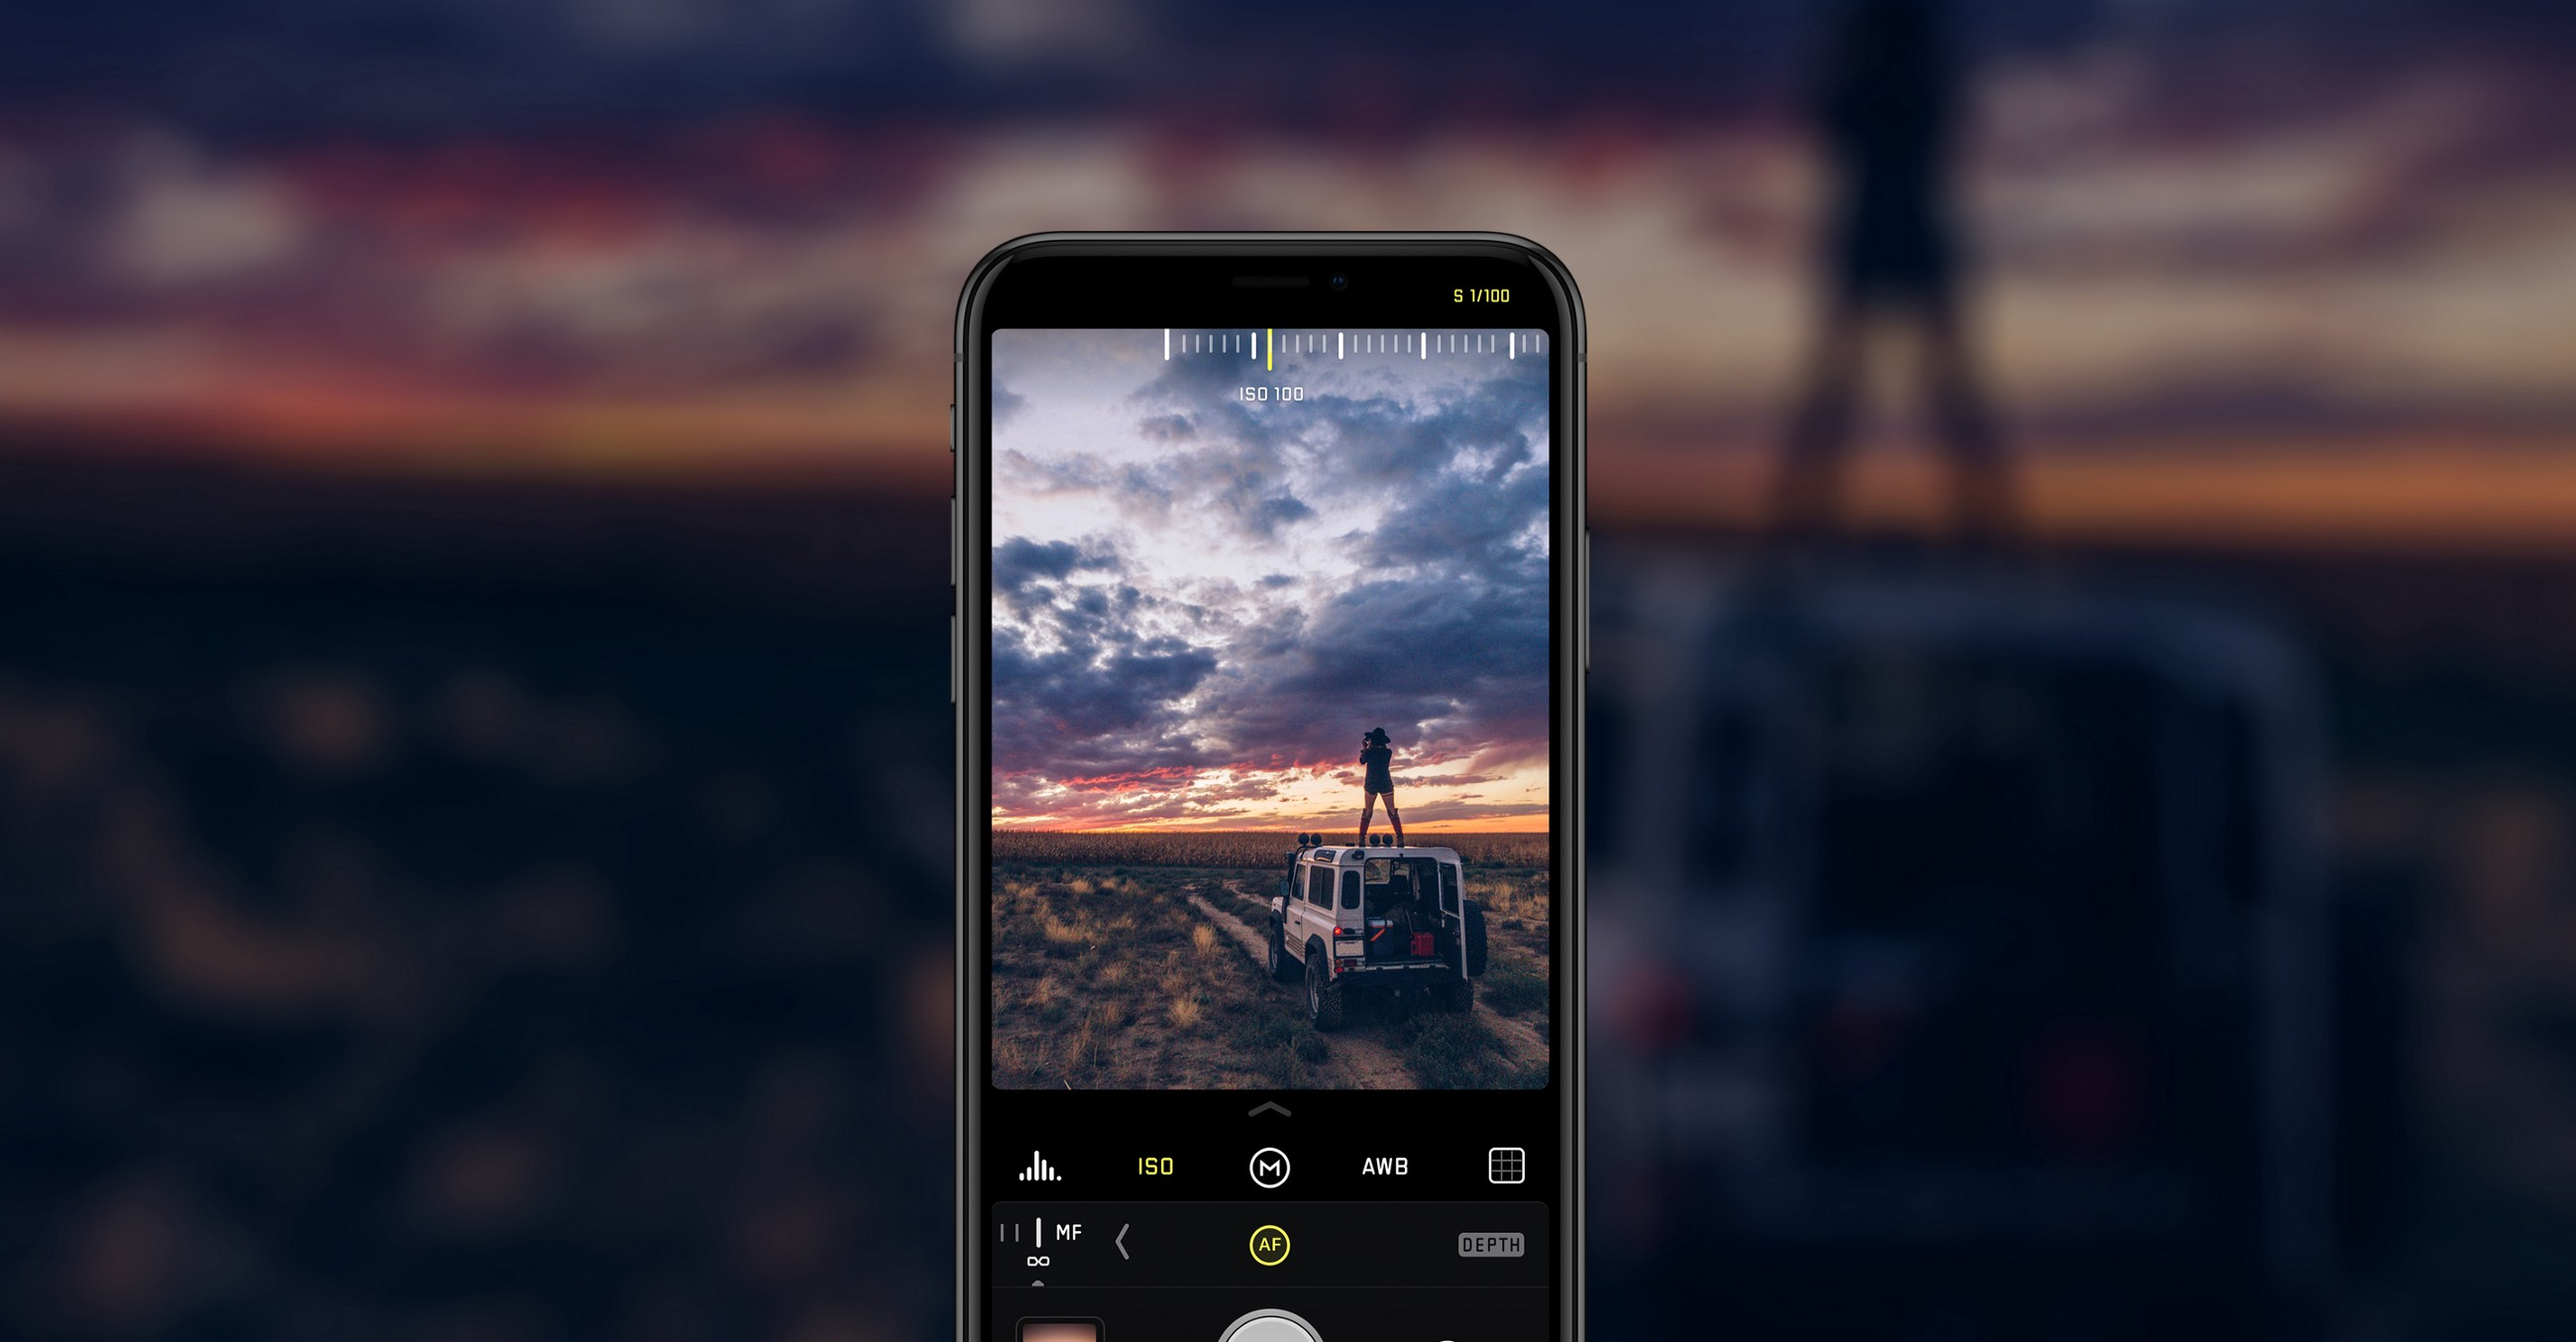 The Power of RAW on iPhone, Part 1: Shooting RAW